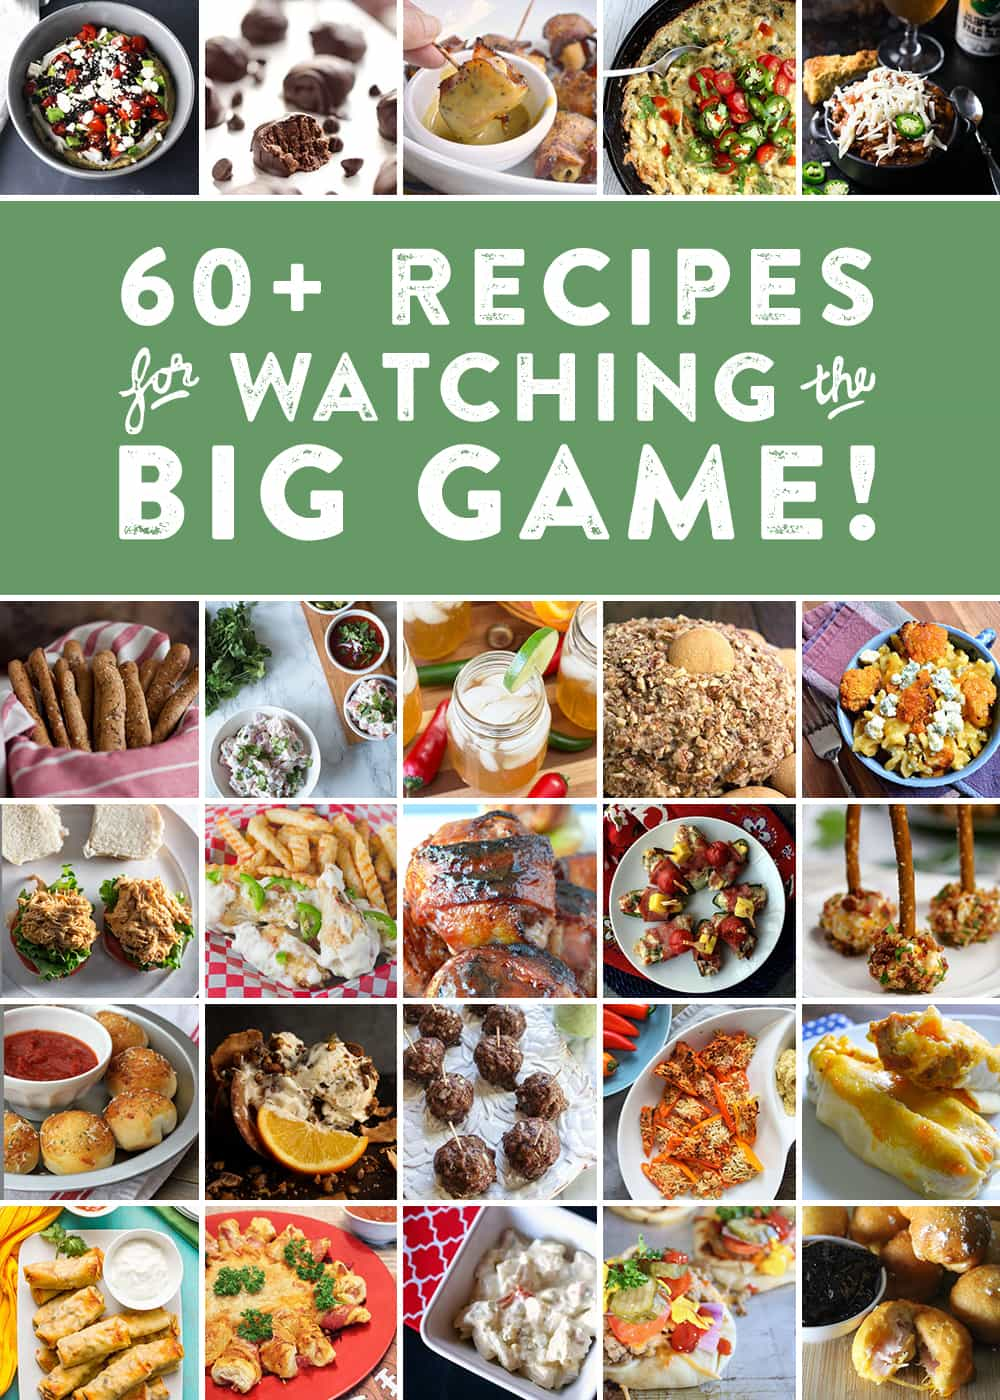 With the football season coming to a close, it's time to start thinking about Big Game parties and inevitably, the recipes you will make and bring to yours! In preparation, I've teamed up with my football blogger friends in one final collaboration to bring you some brilliant Big Game recipe ideas.